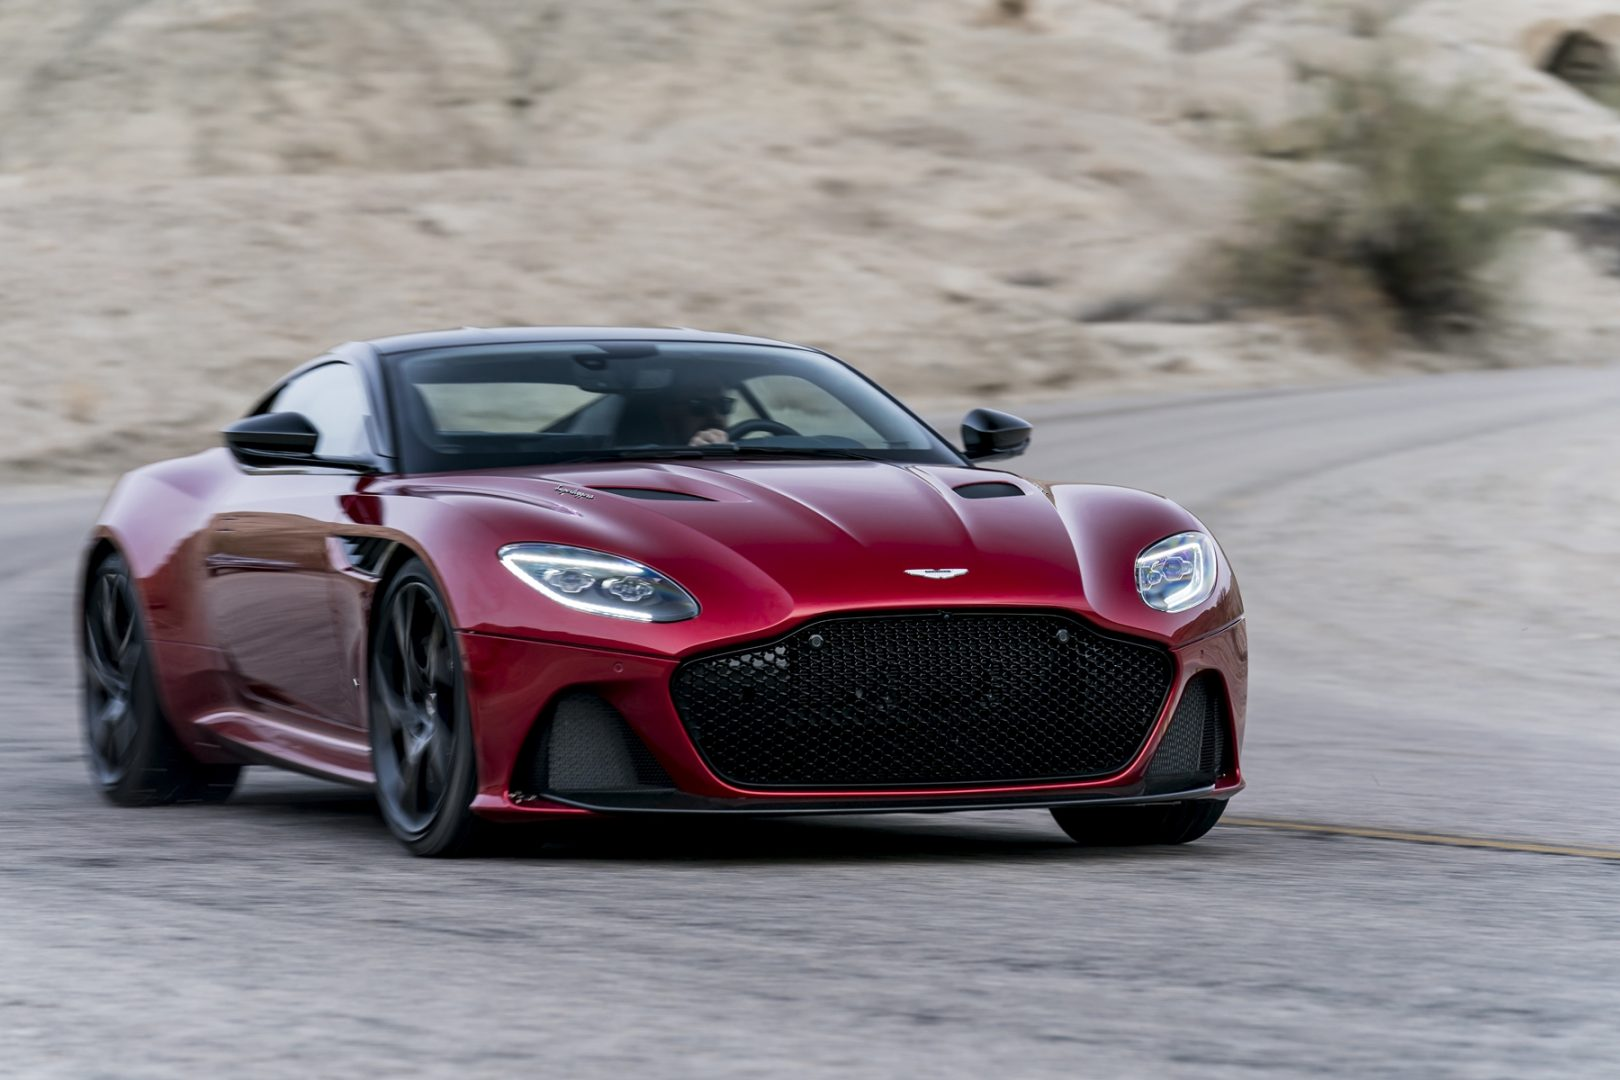 DBS_Superleggera (3)WM